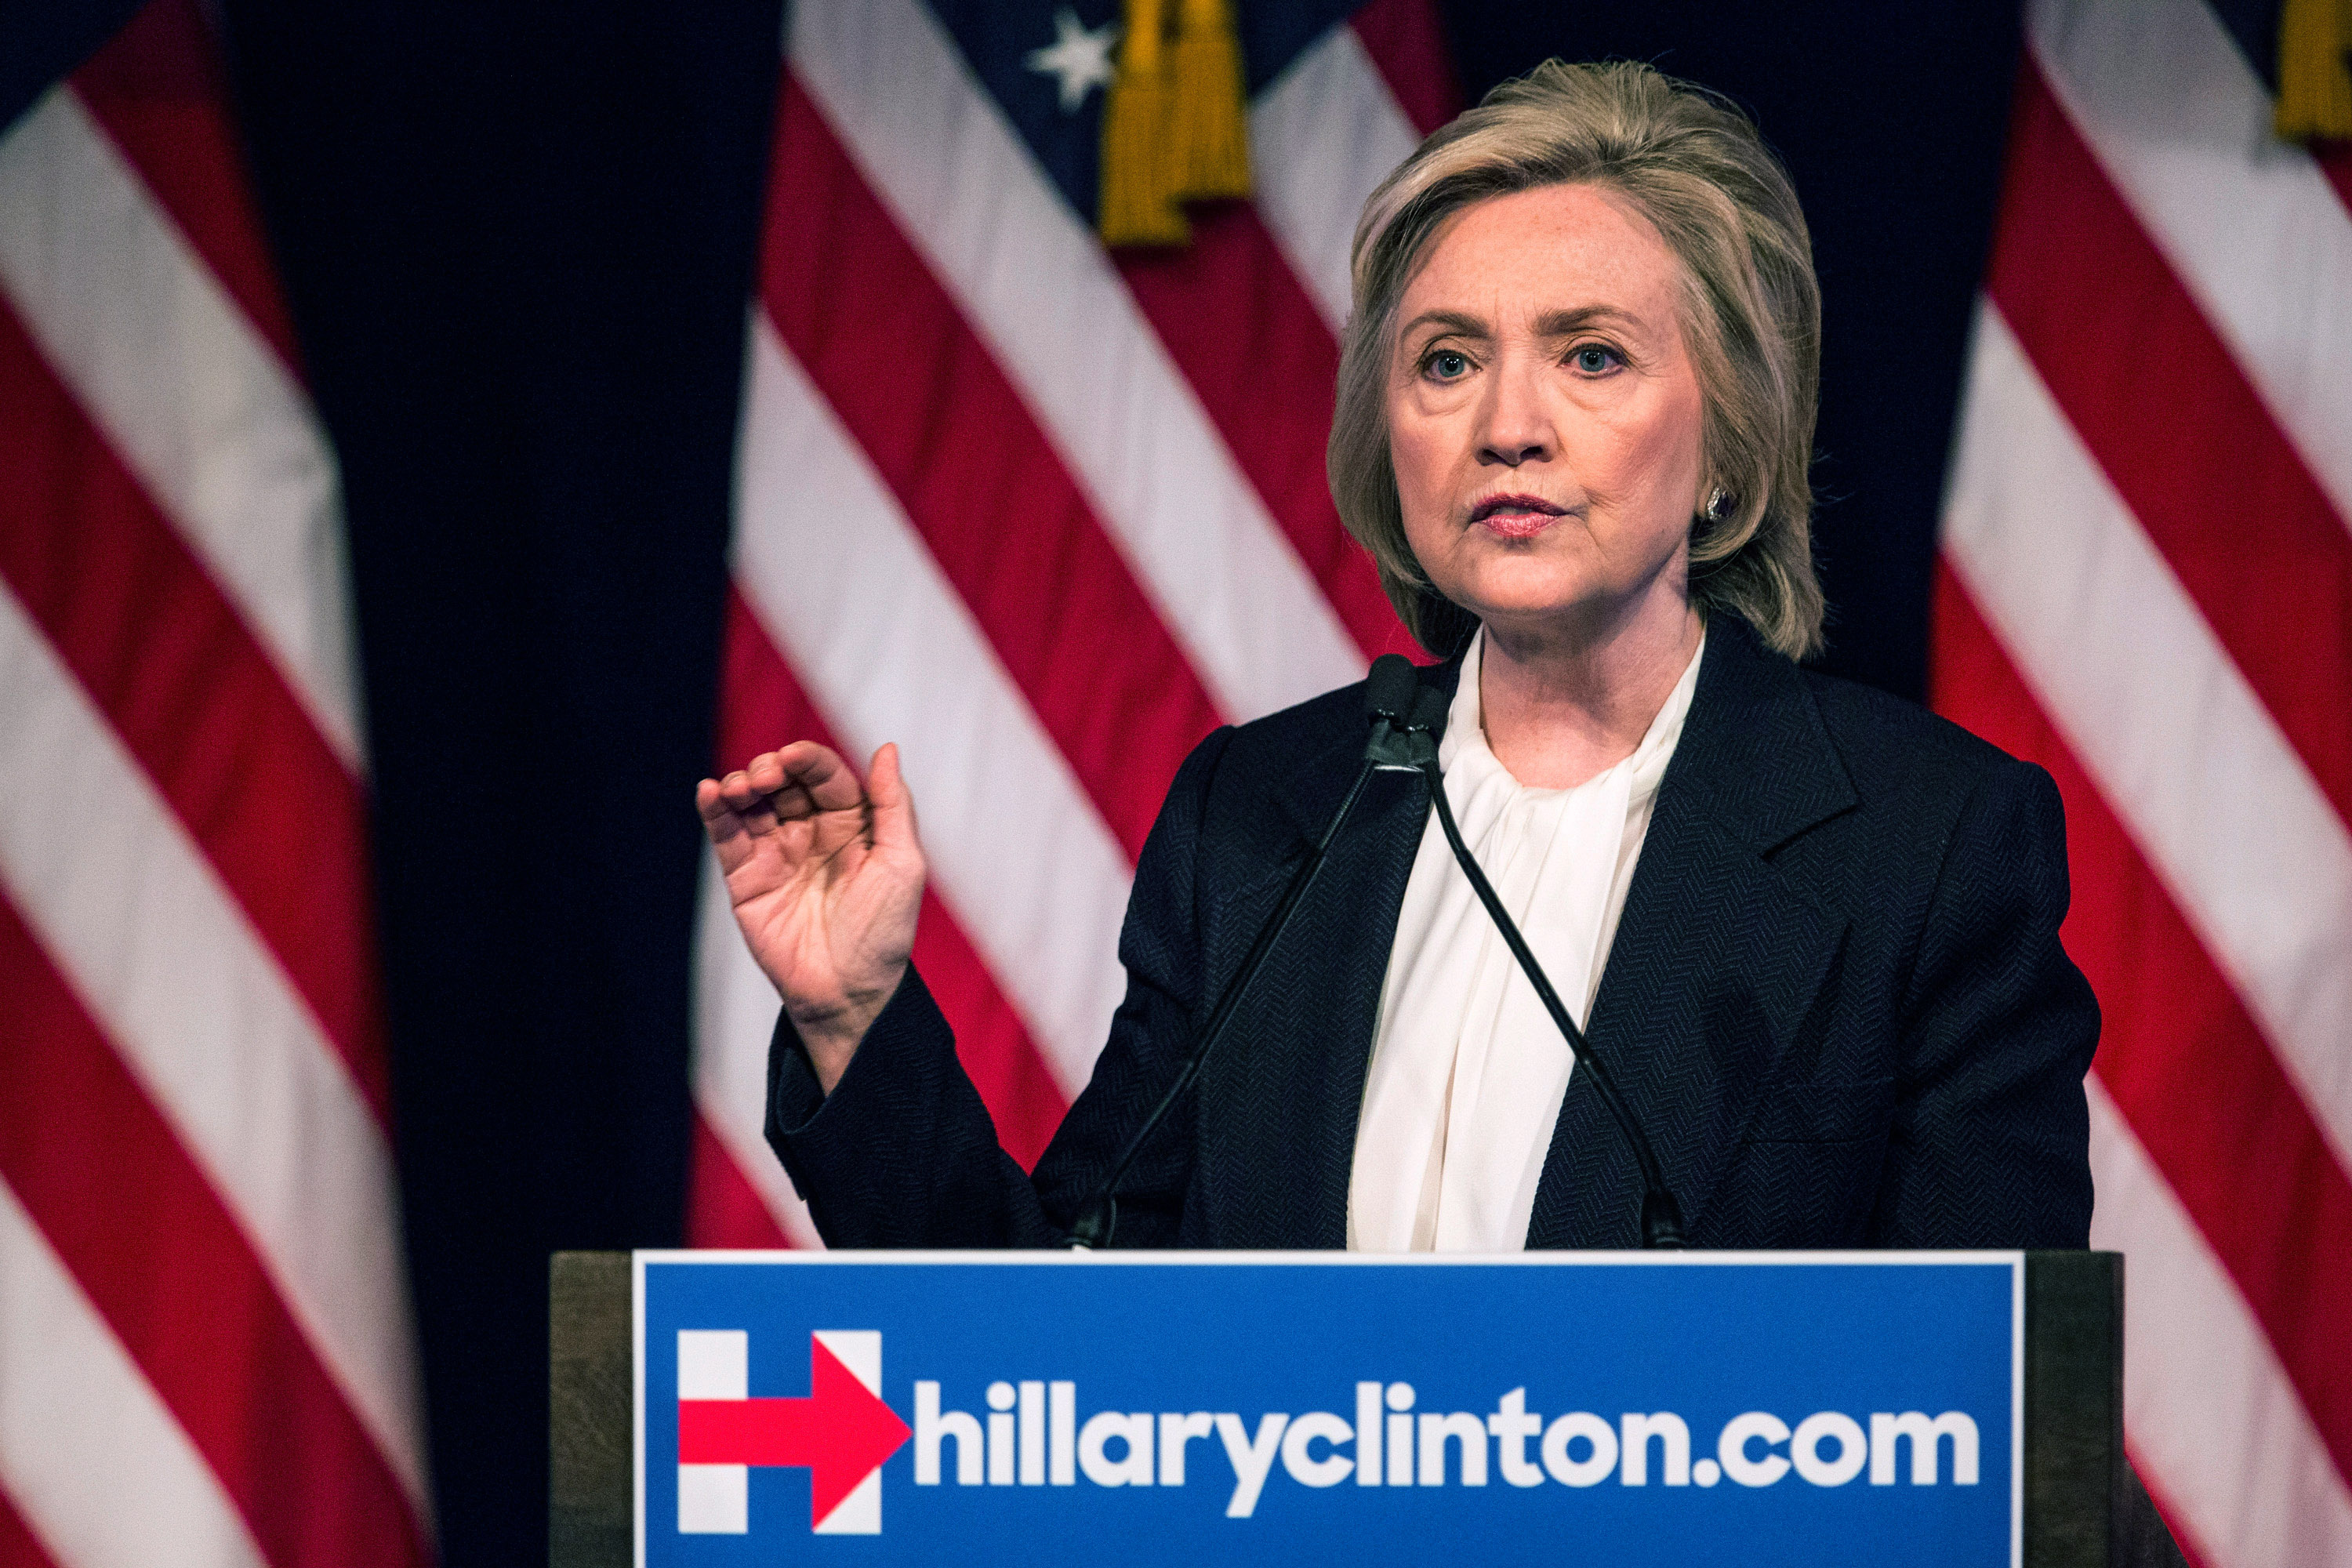 What did Clinton do to boost the economy?